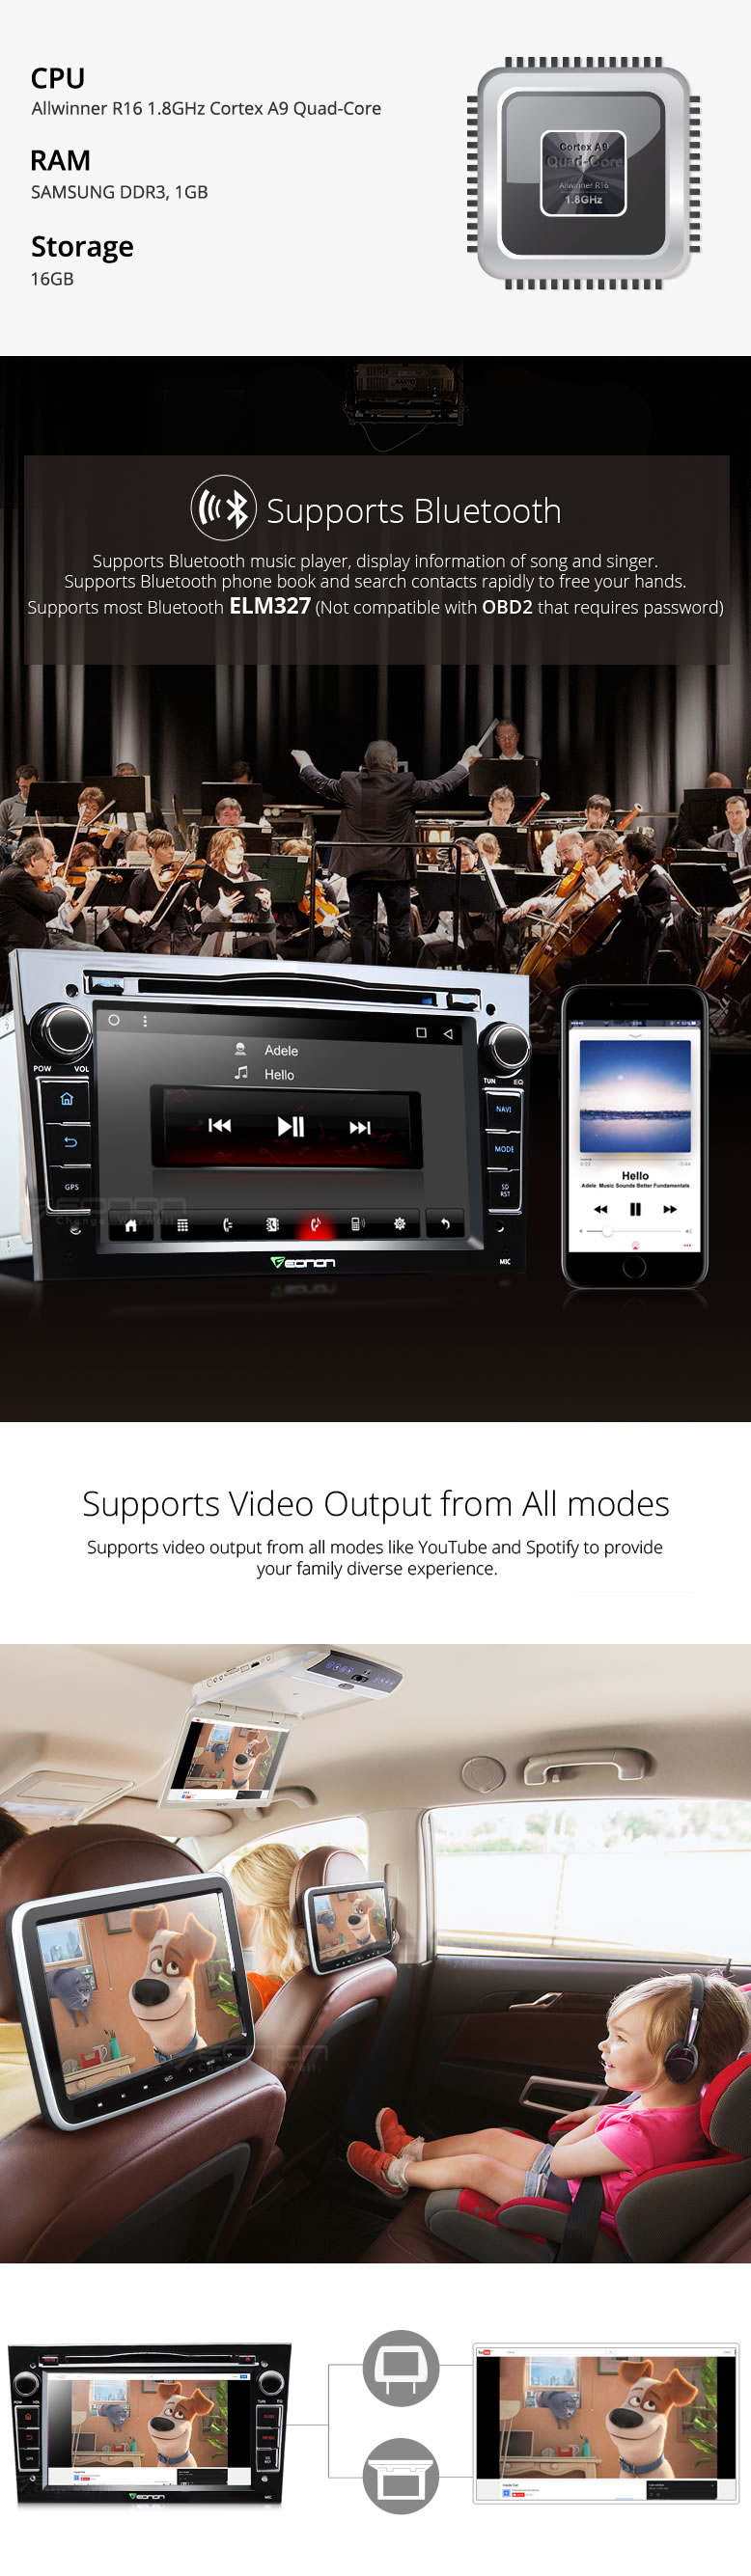 7″ Quad Core Android 6.0 OS Special Car DVD for Opel/Vauxhall/Holden Meriva 2006-2008 & Vectra 2005-2008 & Zafira 2005-2010